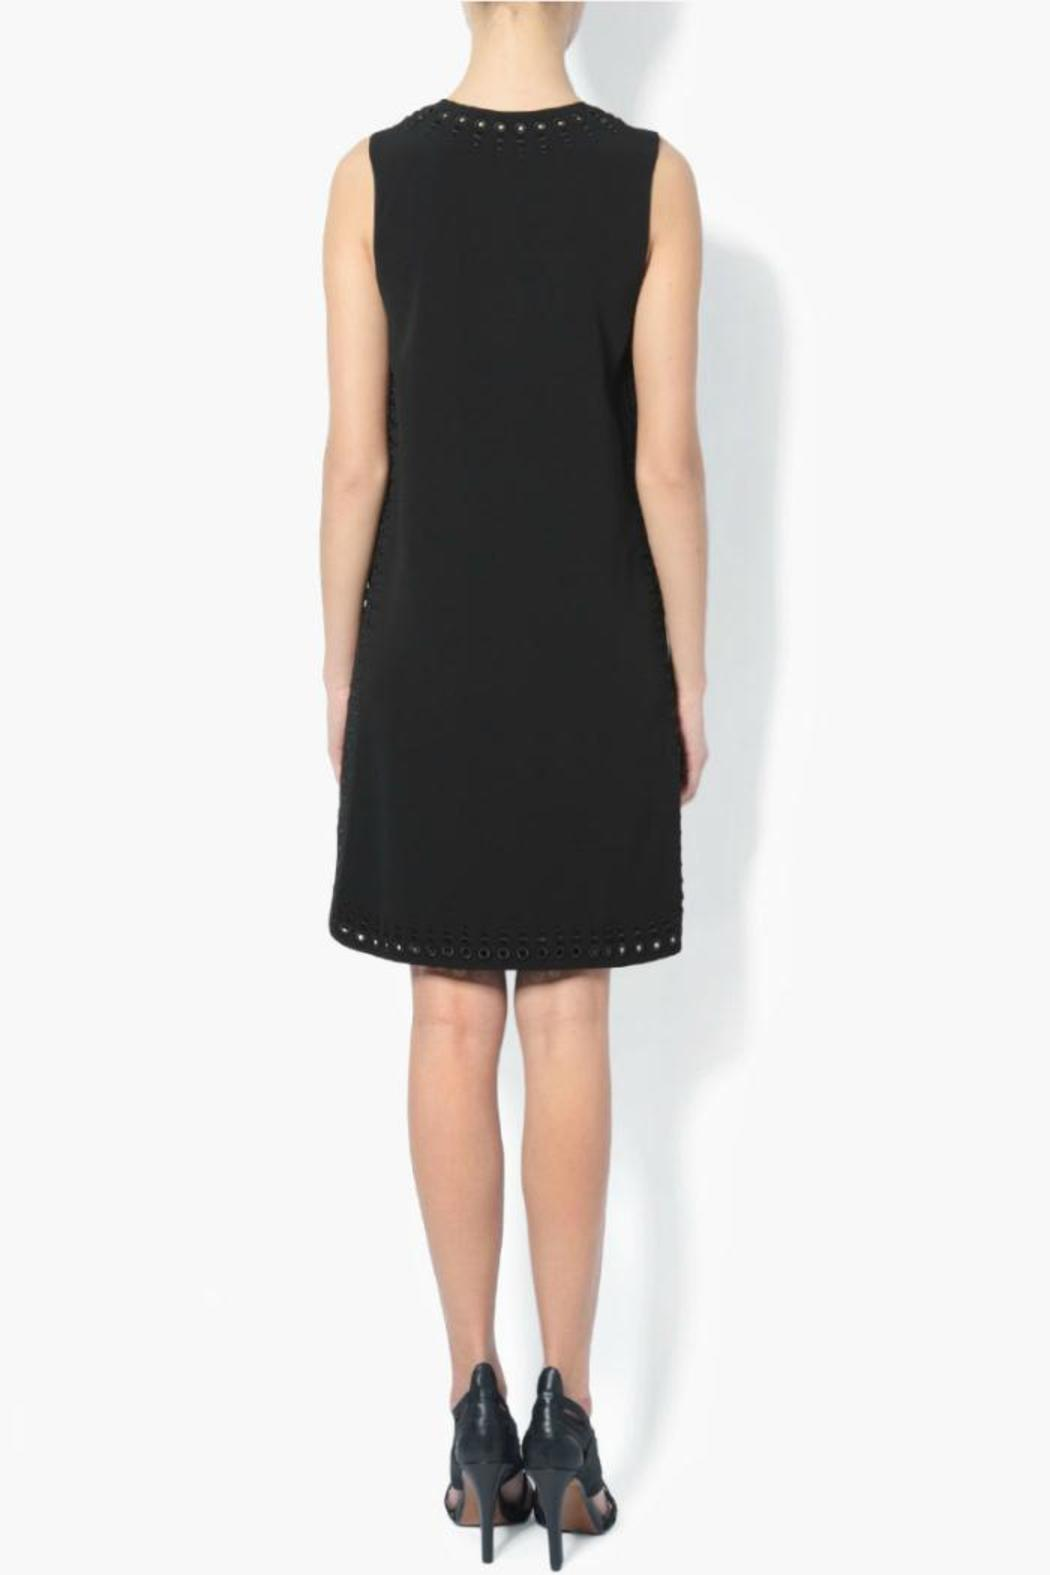 Derek Lam 10 Crosby Lace Up Dress - Front Full Image